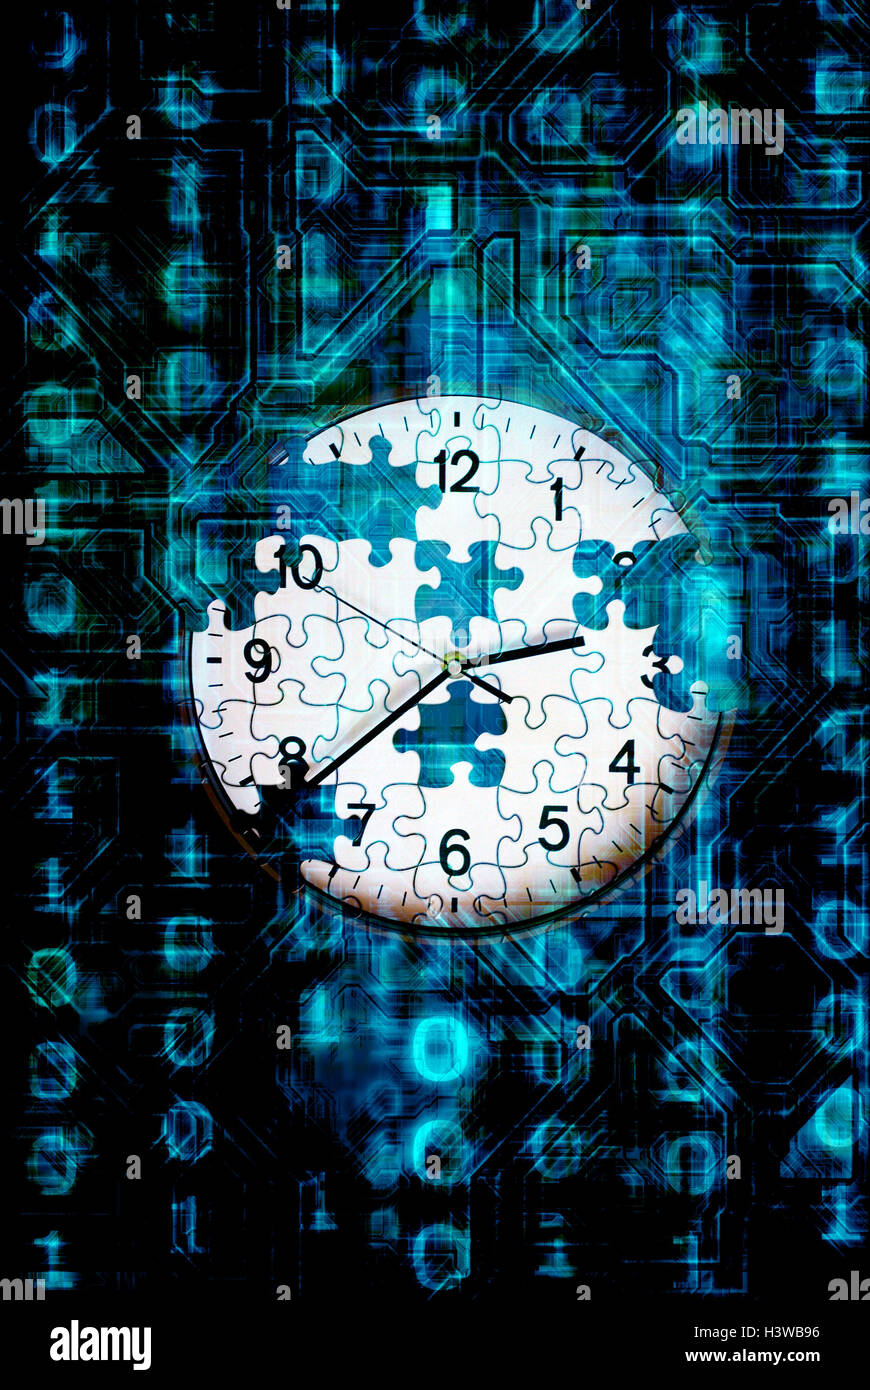 breaking a code against time concept - Stock Image